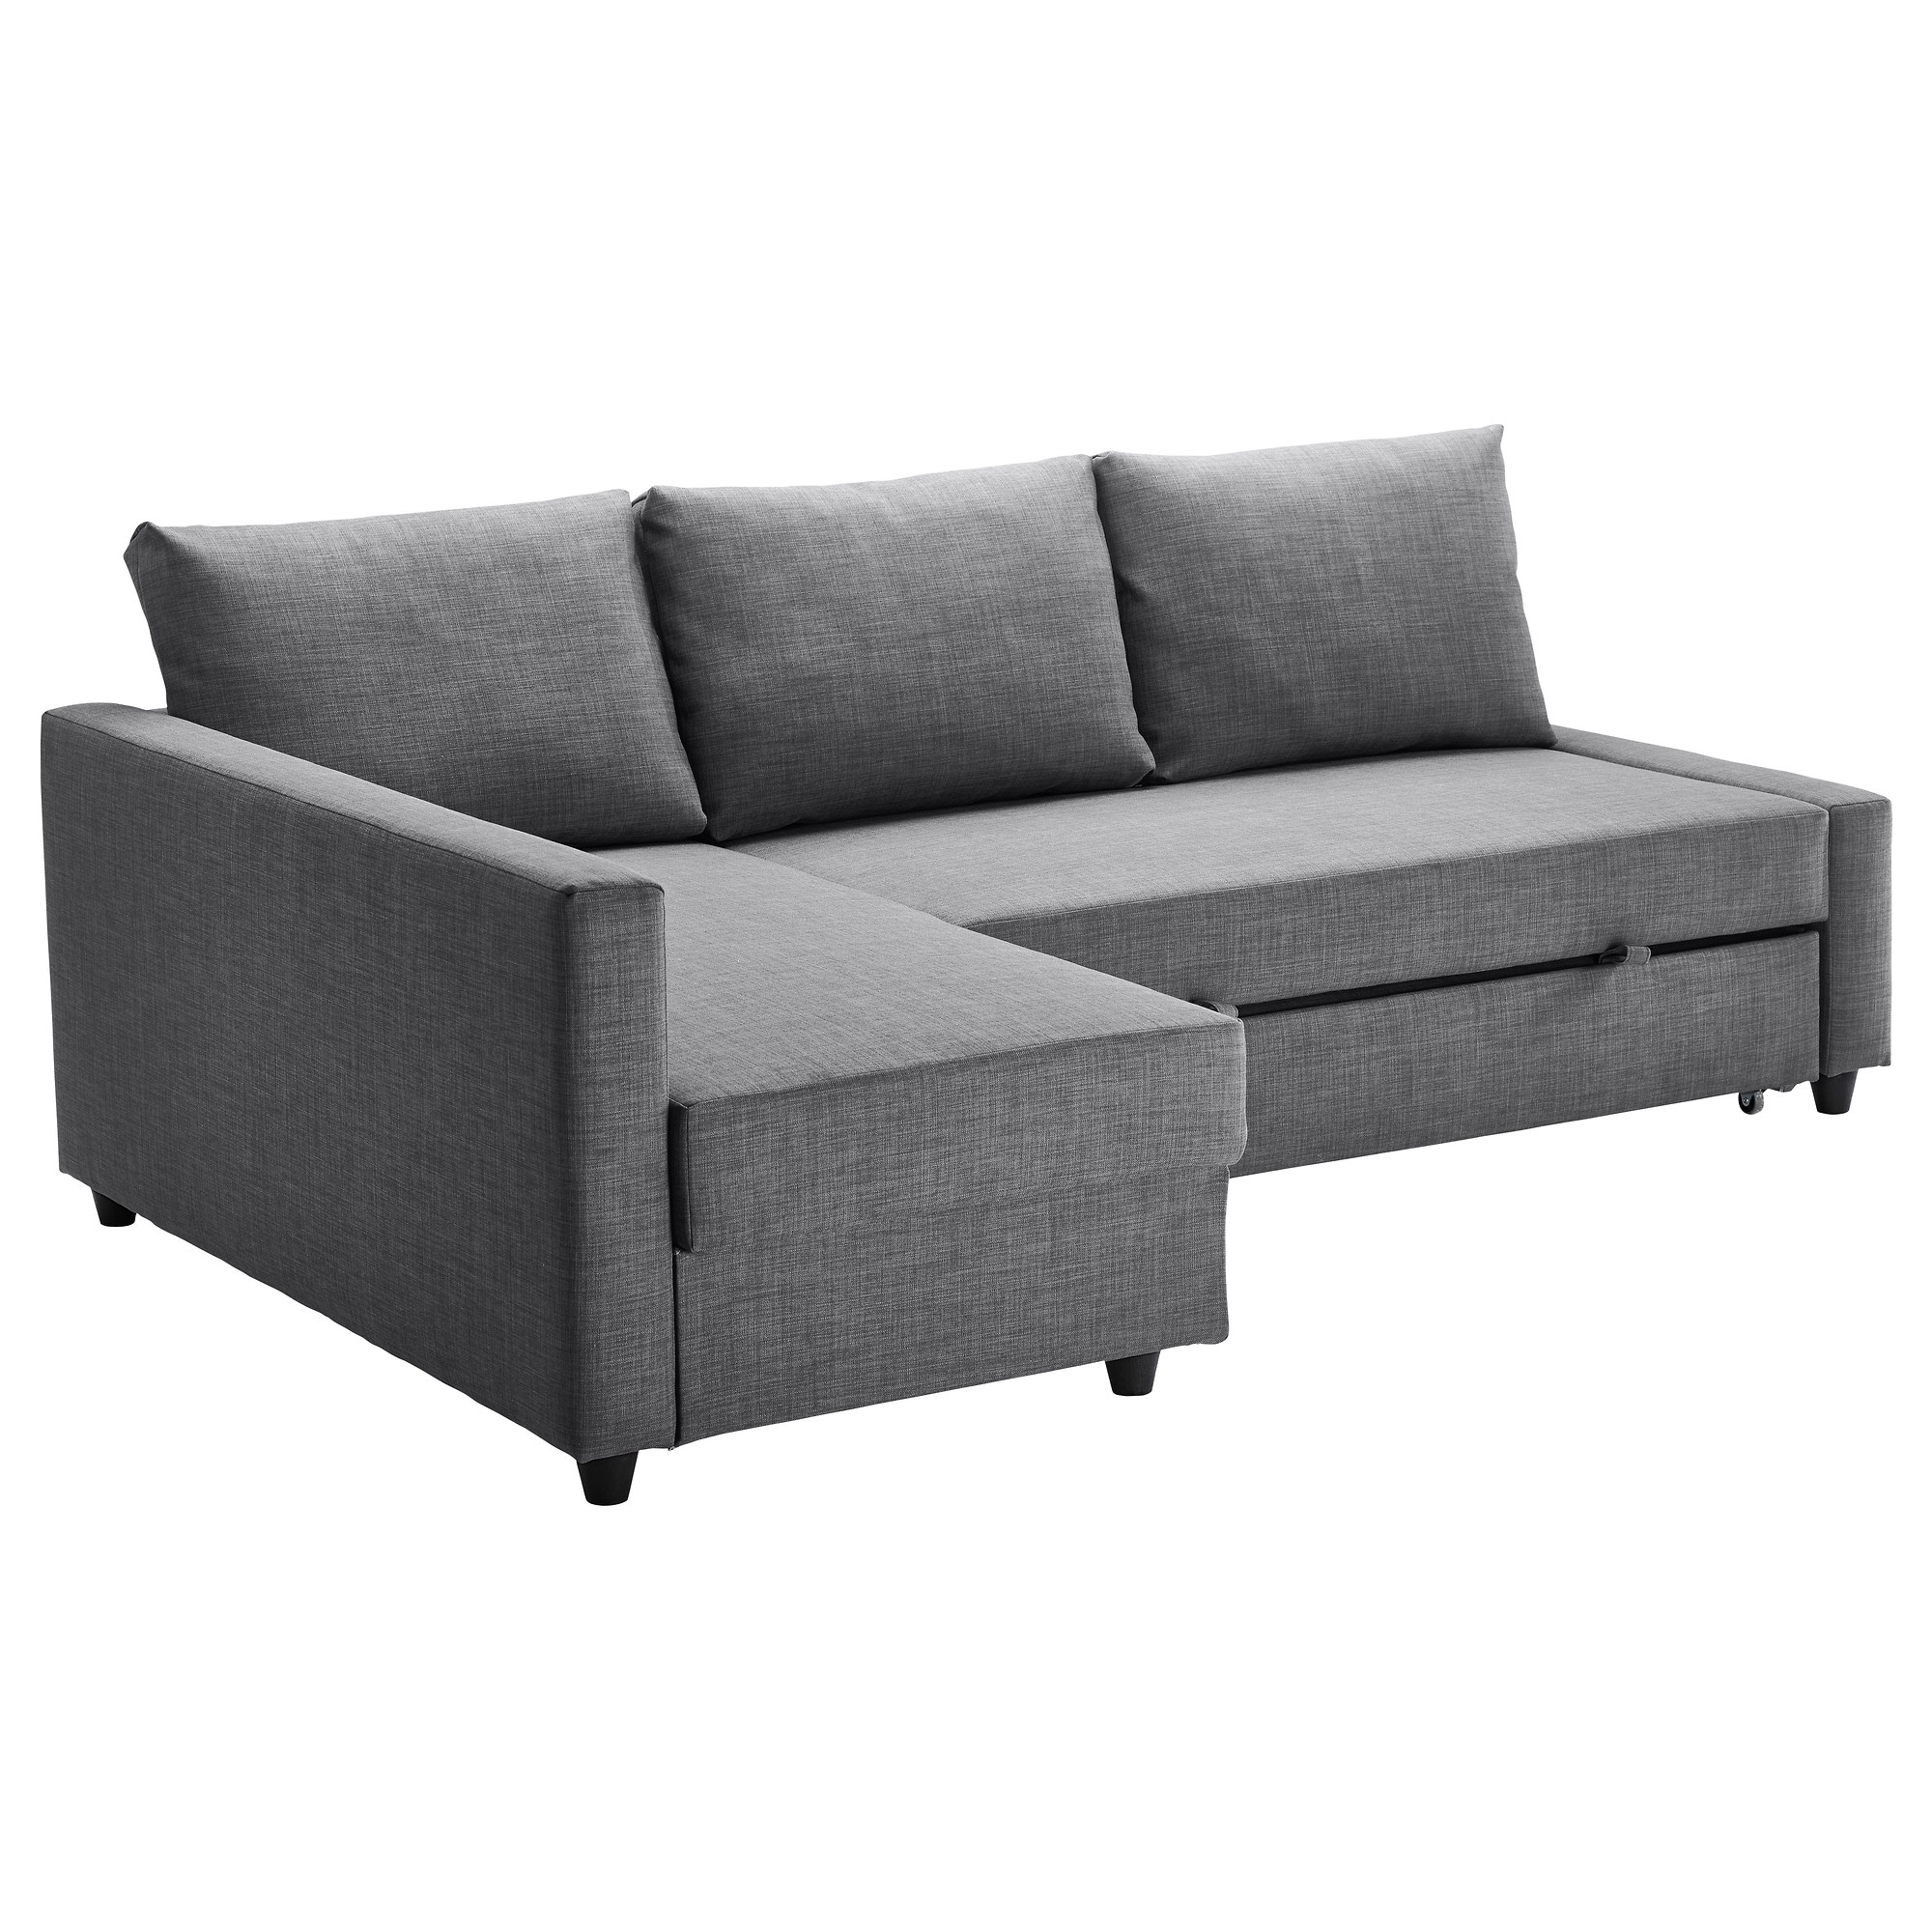 Preferred Chaise Sofa Chairs In Friheten Corner Sofa Bed With Storage Skiftebo Dark Grey – Ikea (Gallery 12 of 20)